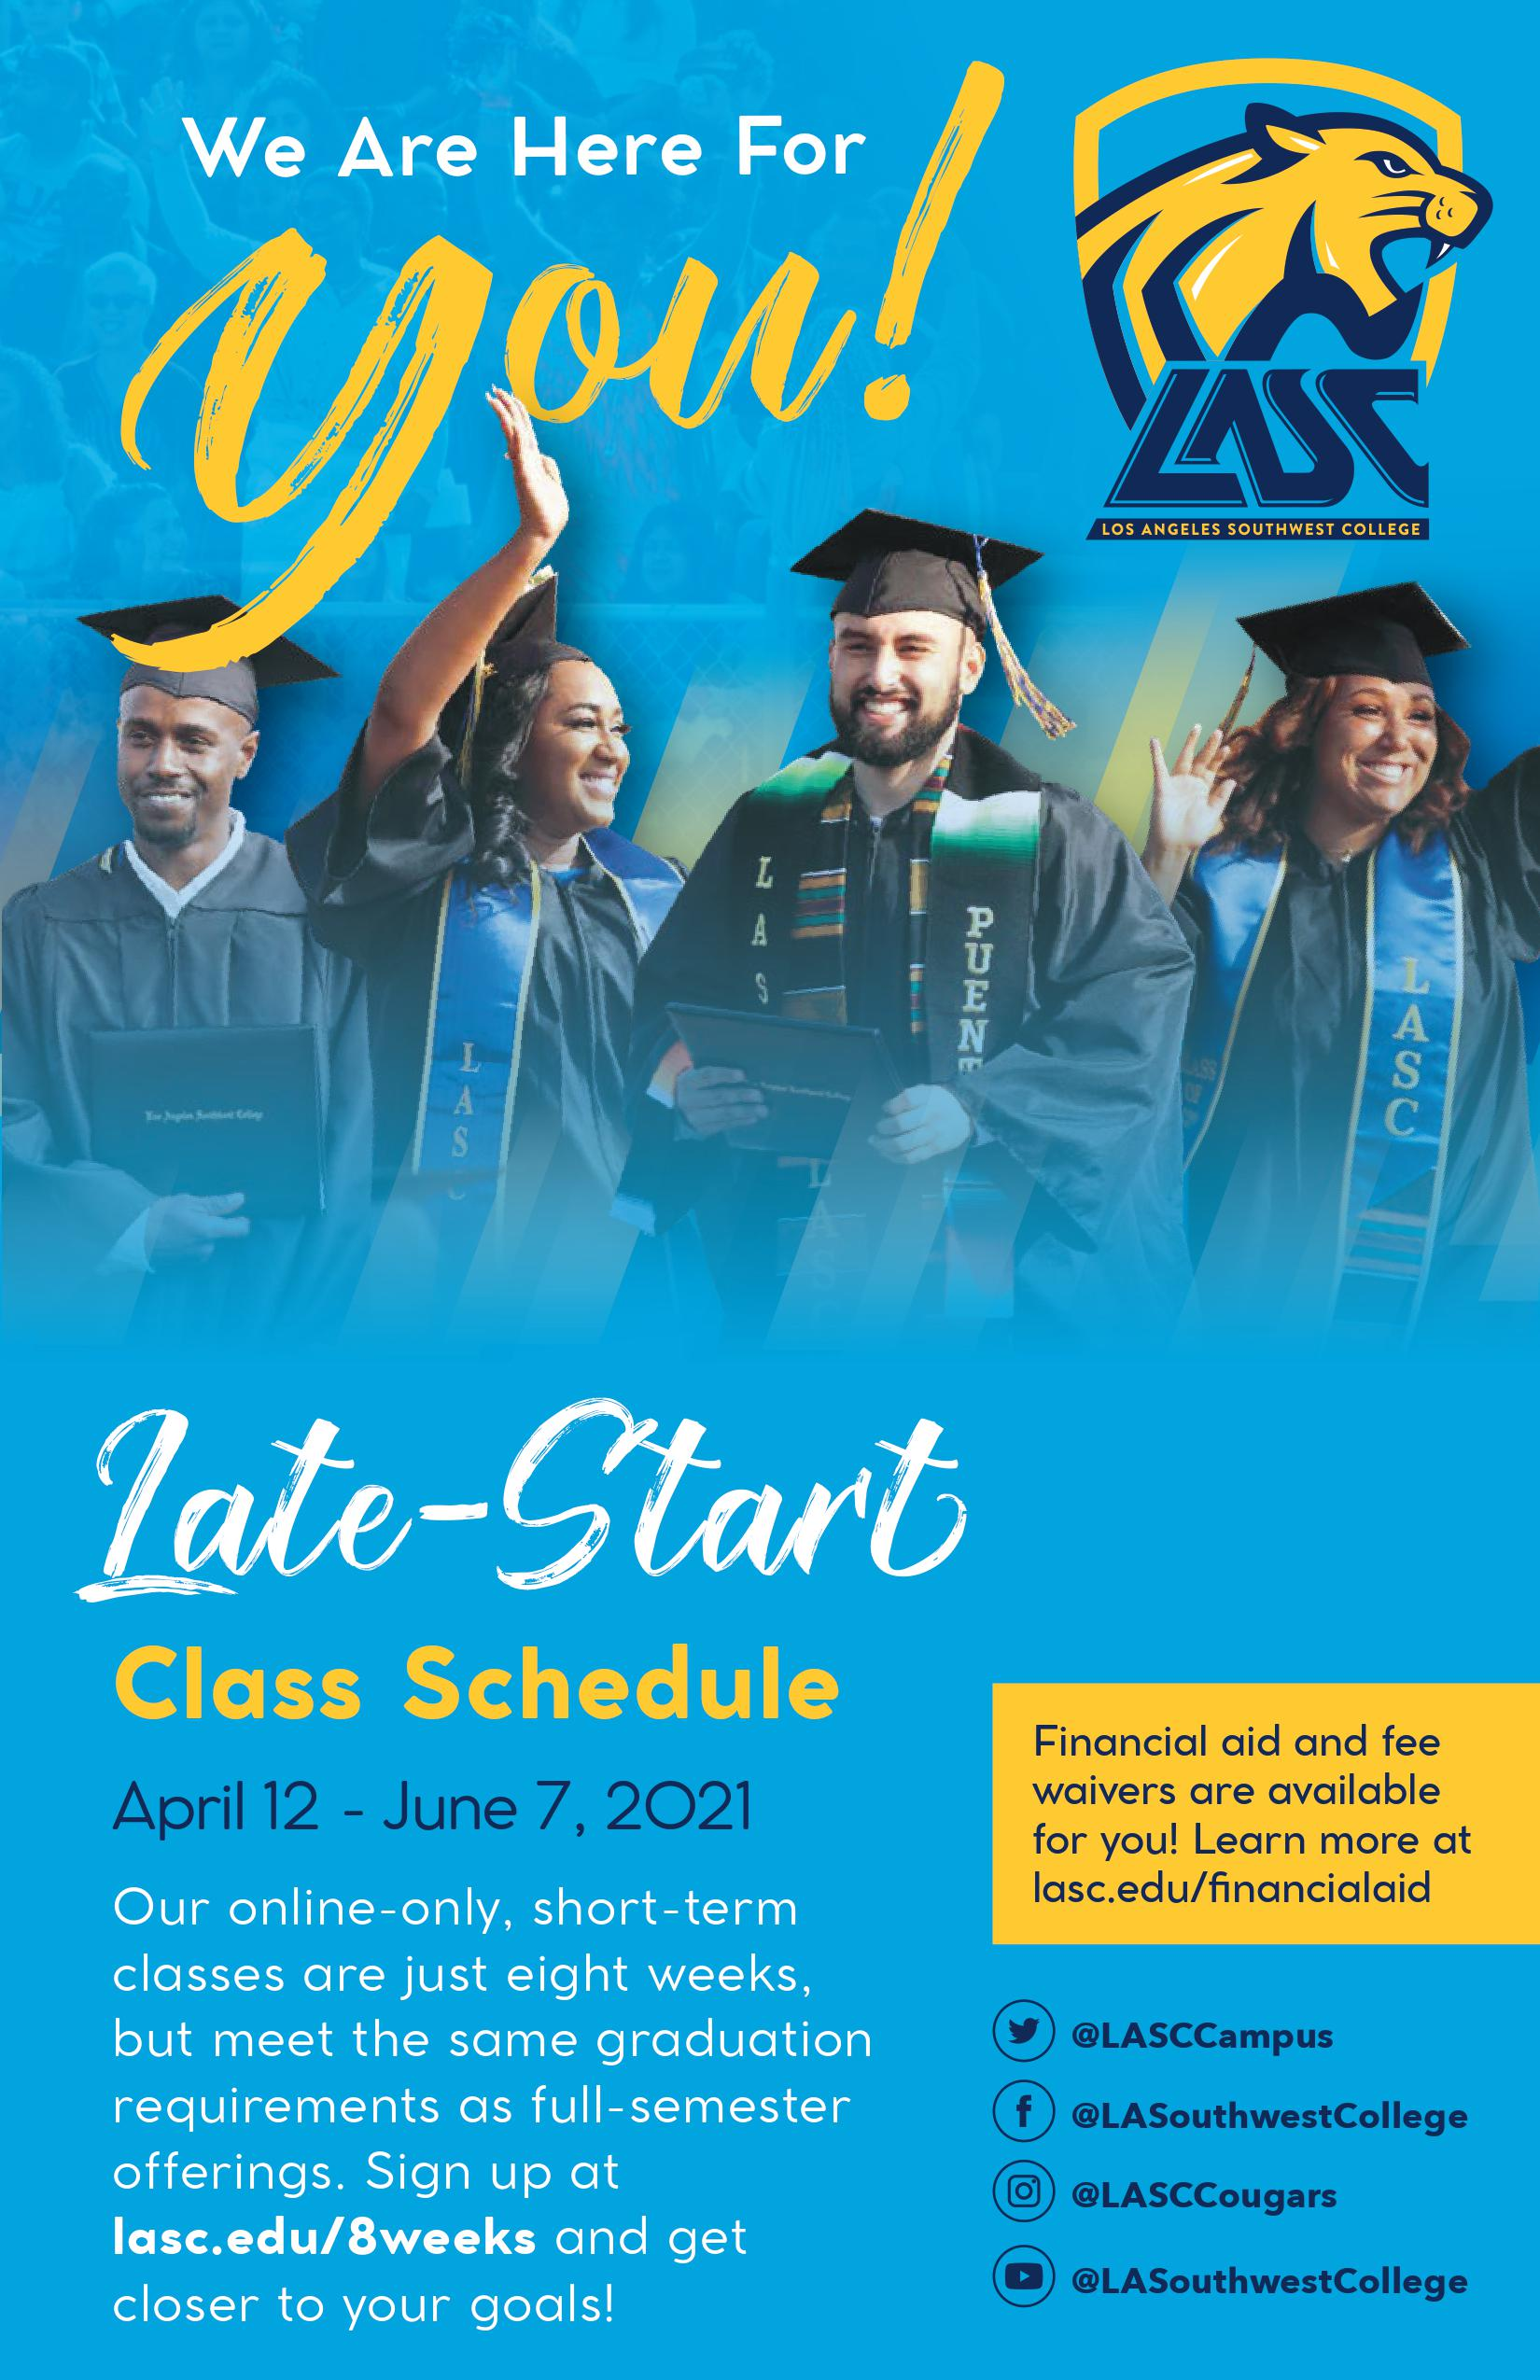 Class schedule for 2020 Late Start Classes